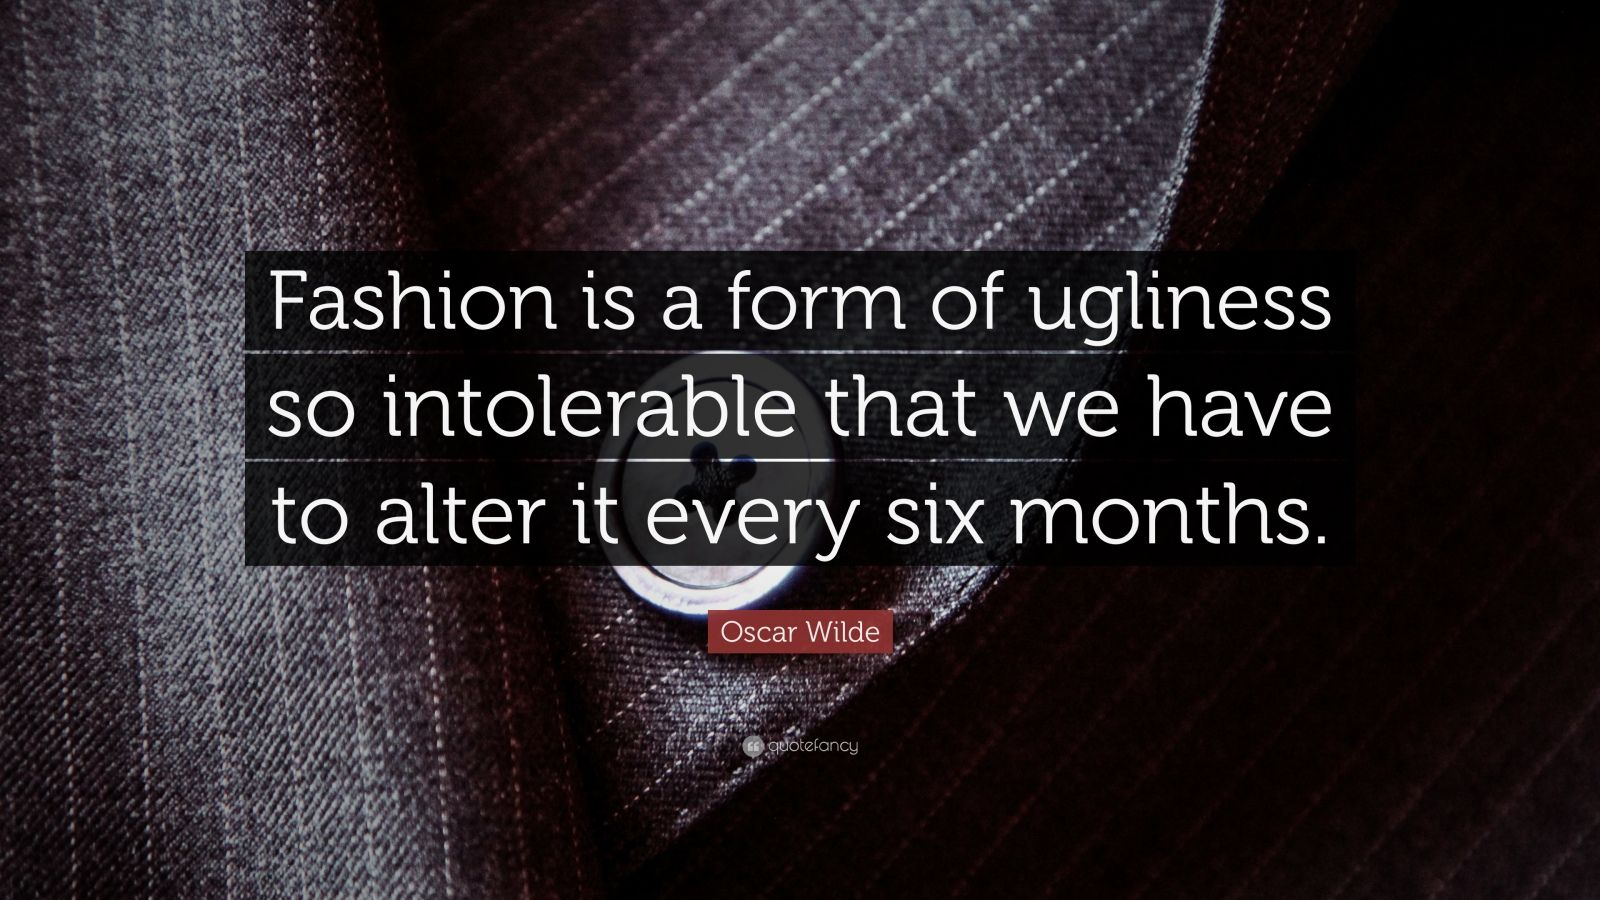 """Oscar Wilde Quote: """"Fashion is a form of ugliness so intolerable that we have to alter it every six months."""""""